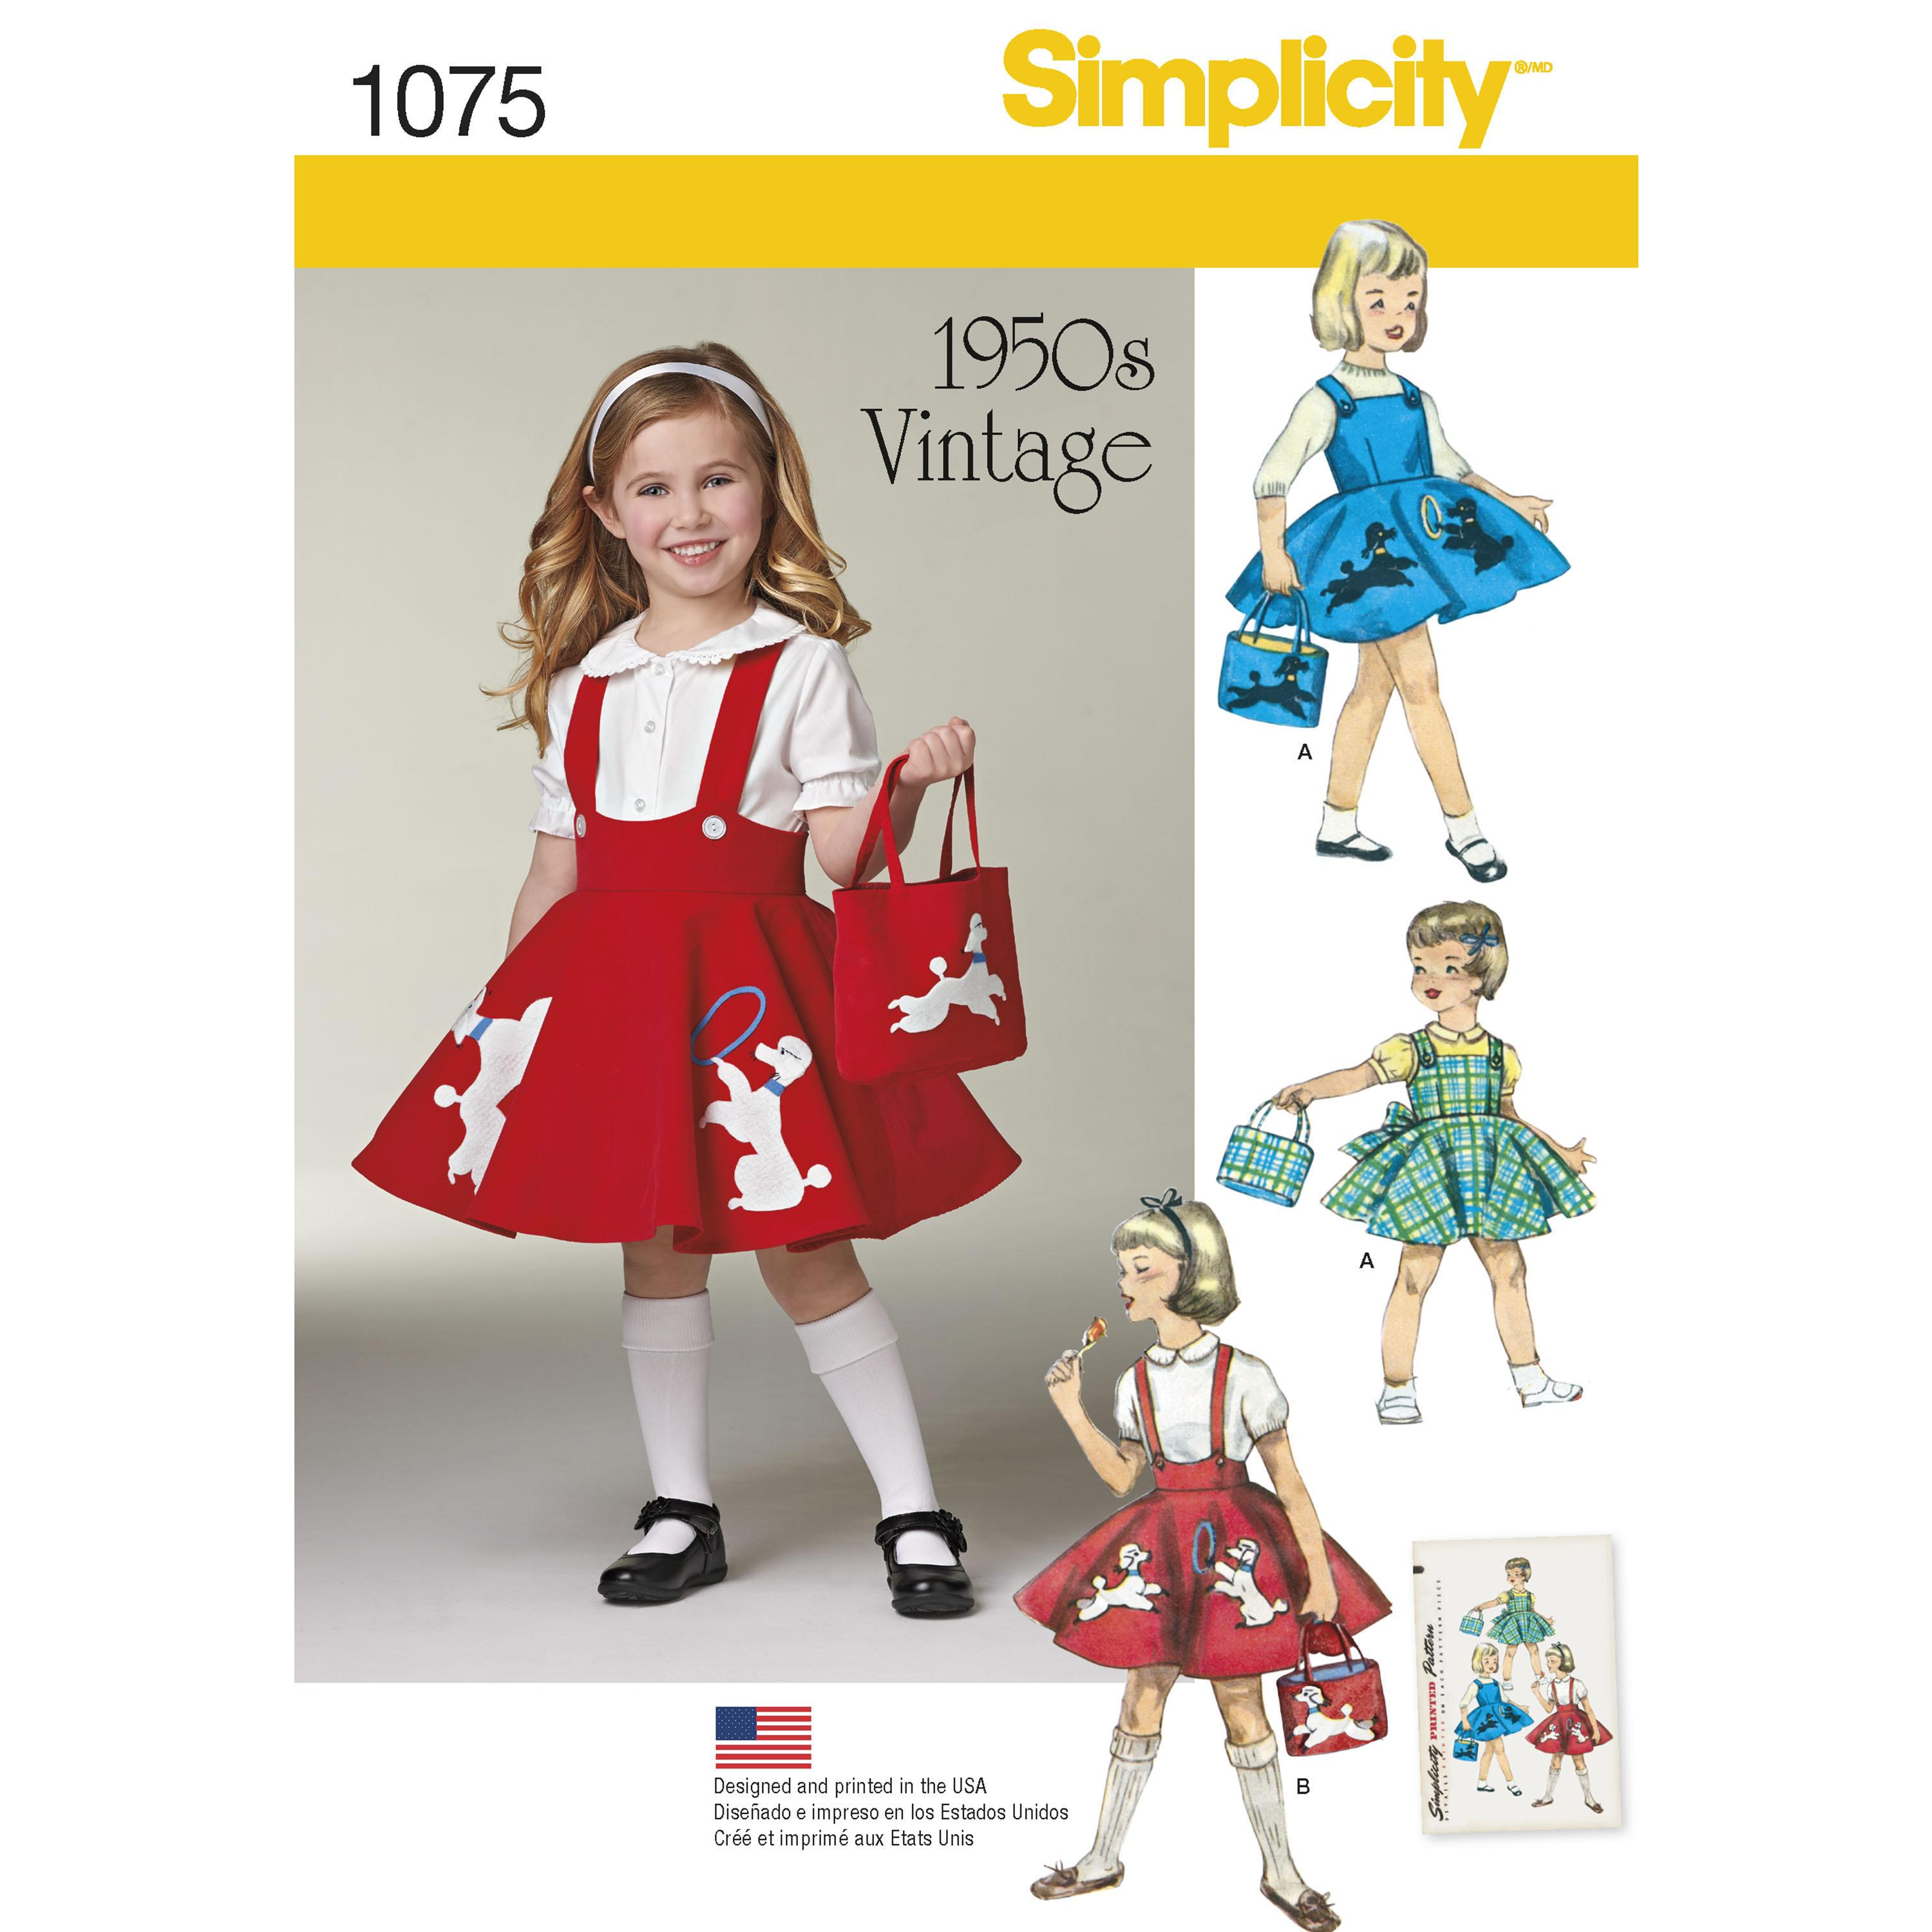 Simplicity S1075 Child's Jumper, Skirt and Bag